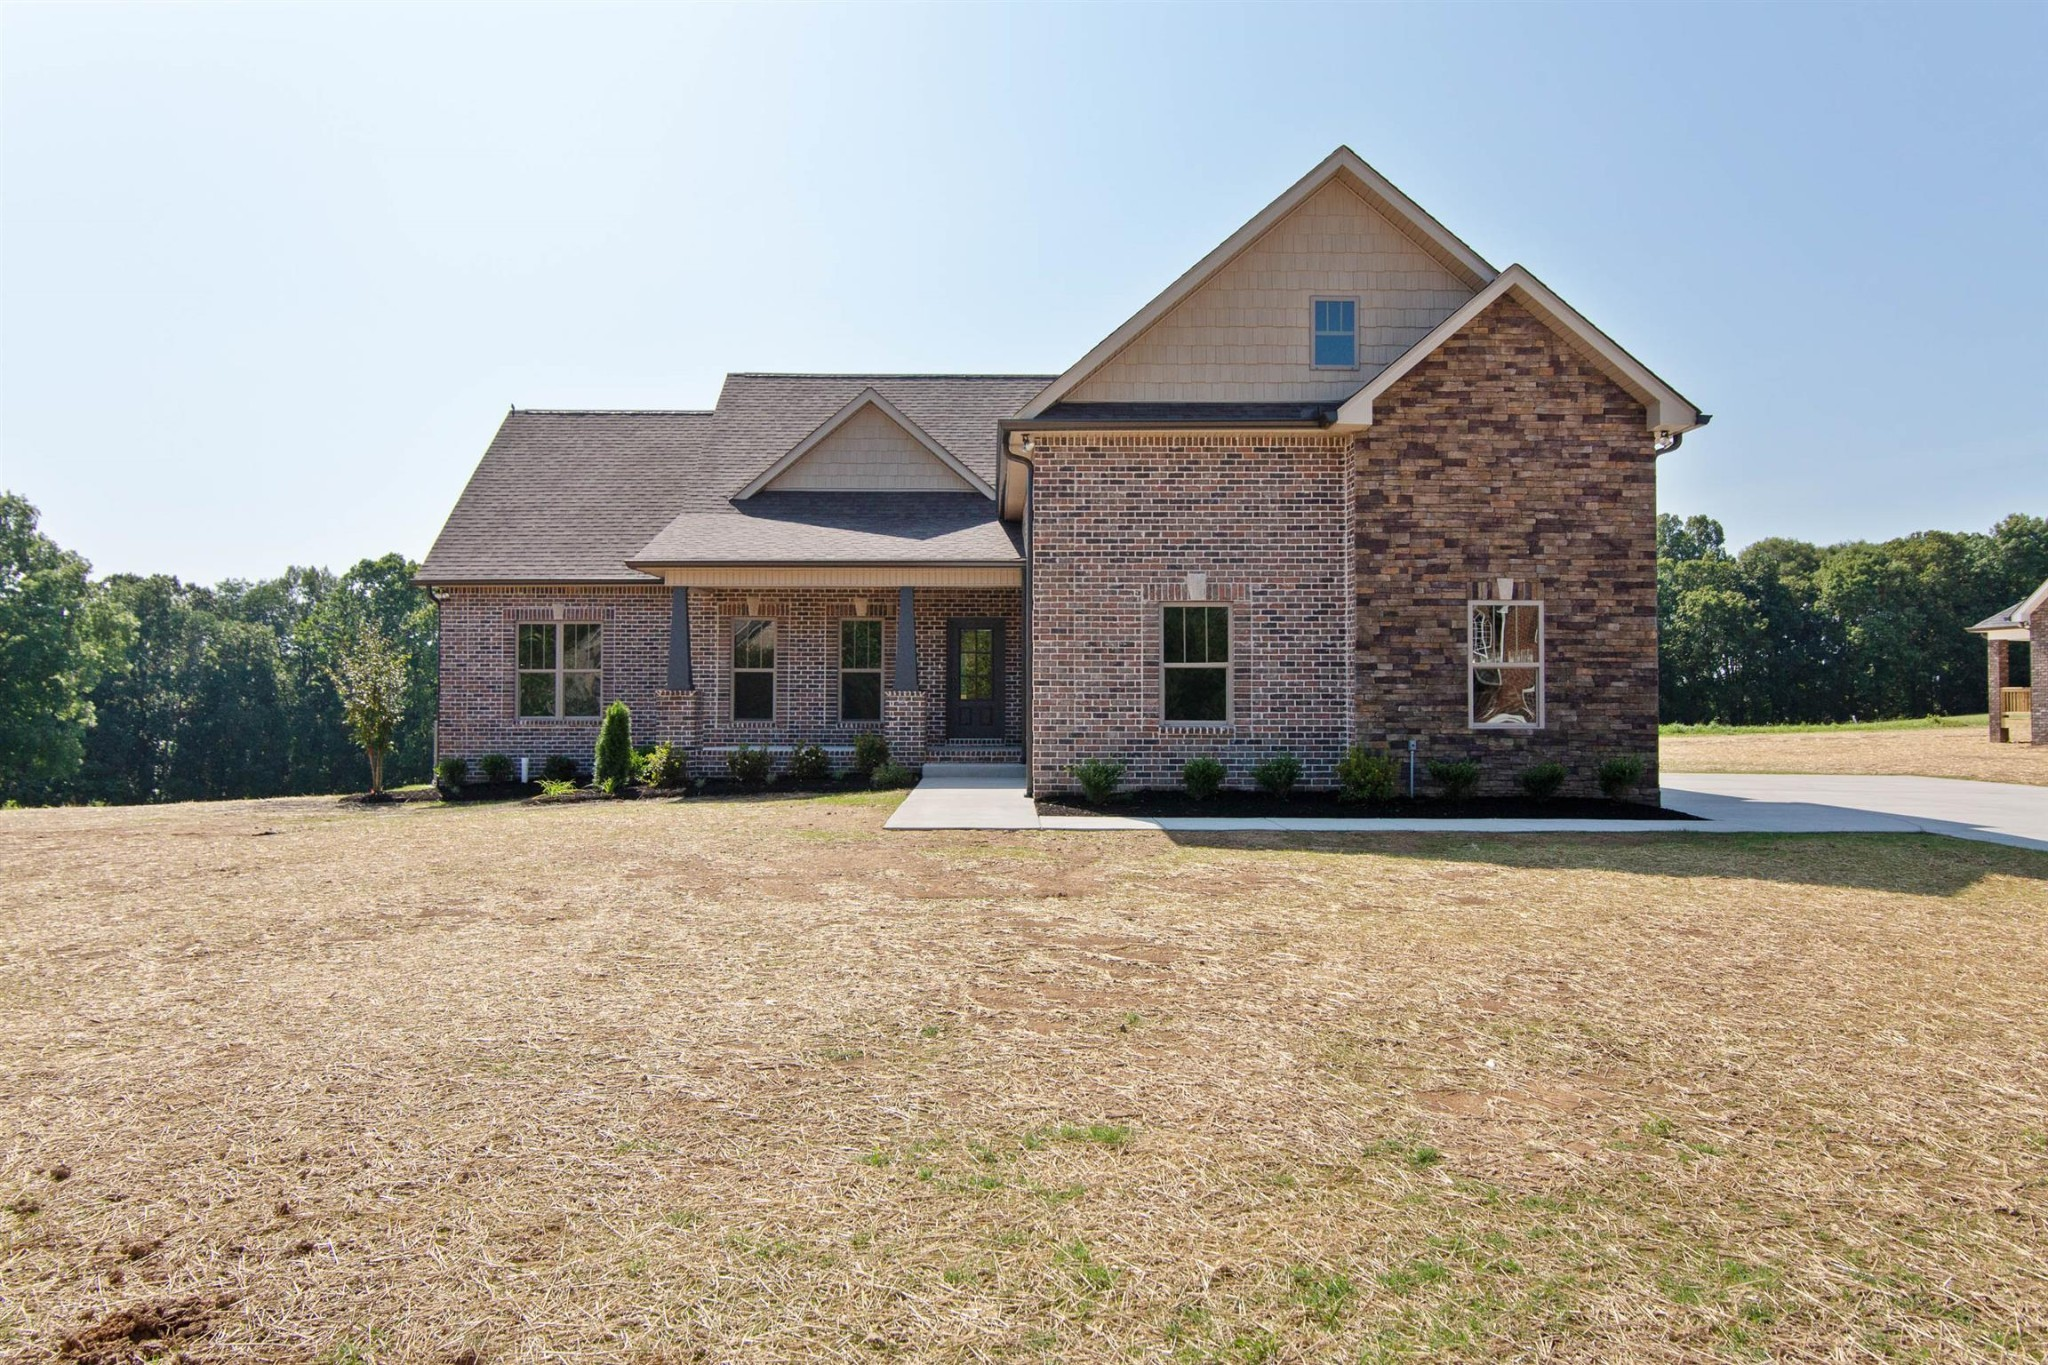 4035 Ironwood Dr Property Photo - Greenbrier, TN real estate listing